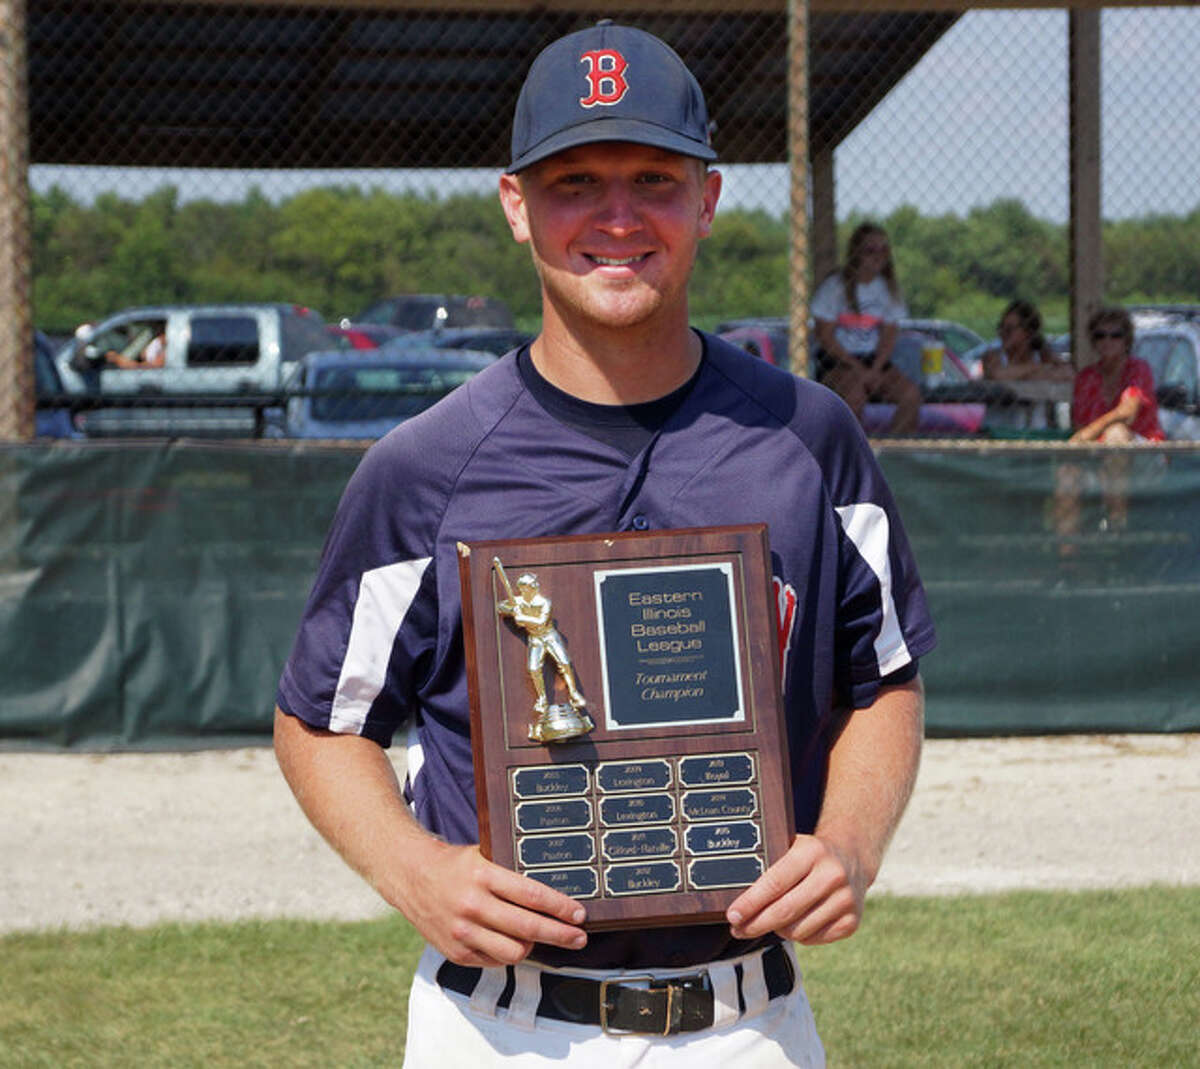 Carrollton grad Josh Krumwiede shows off the trophy after the Buckley Dutchmasters beat the Royal Giants 6-1 for the team's second Eastern Illinois League tournament title in the past four years.